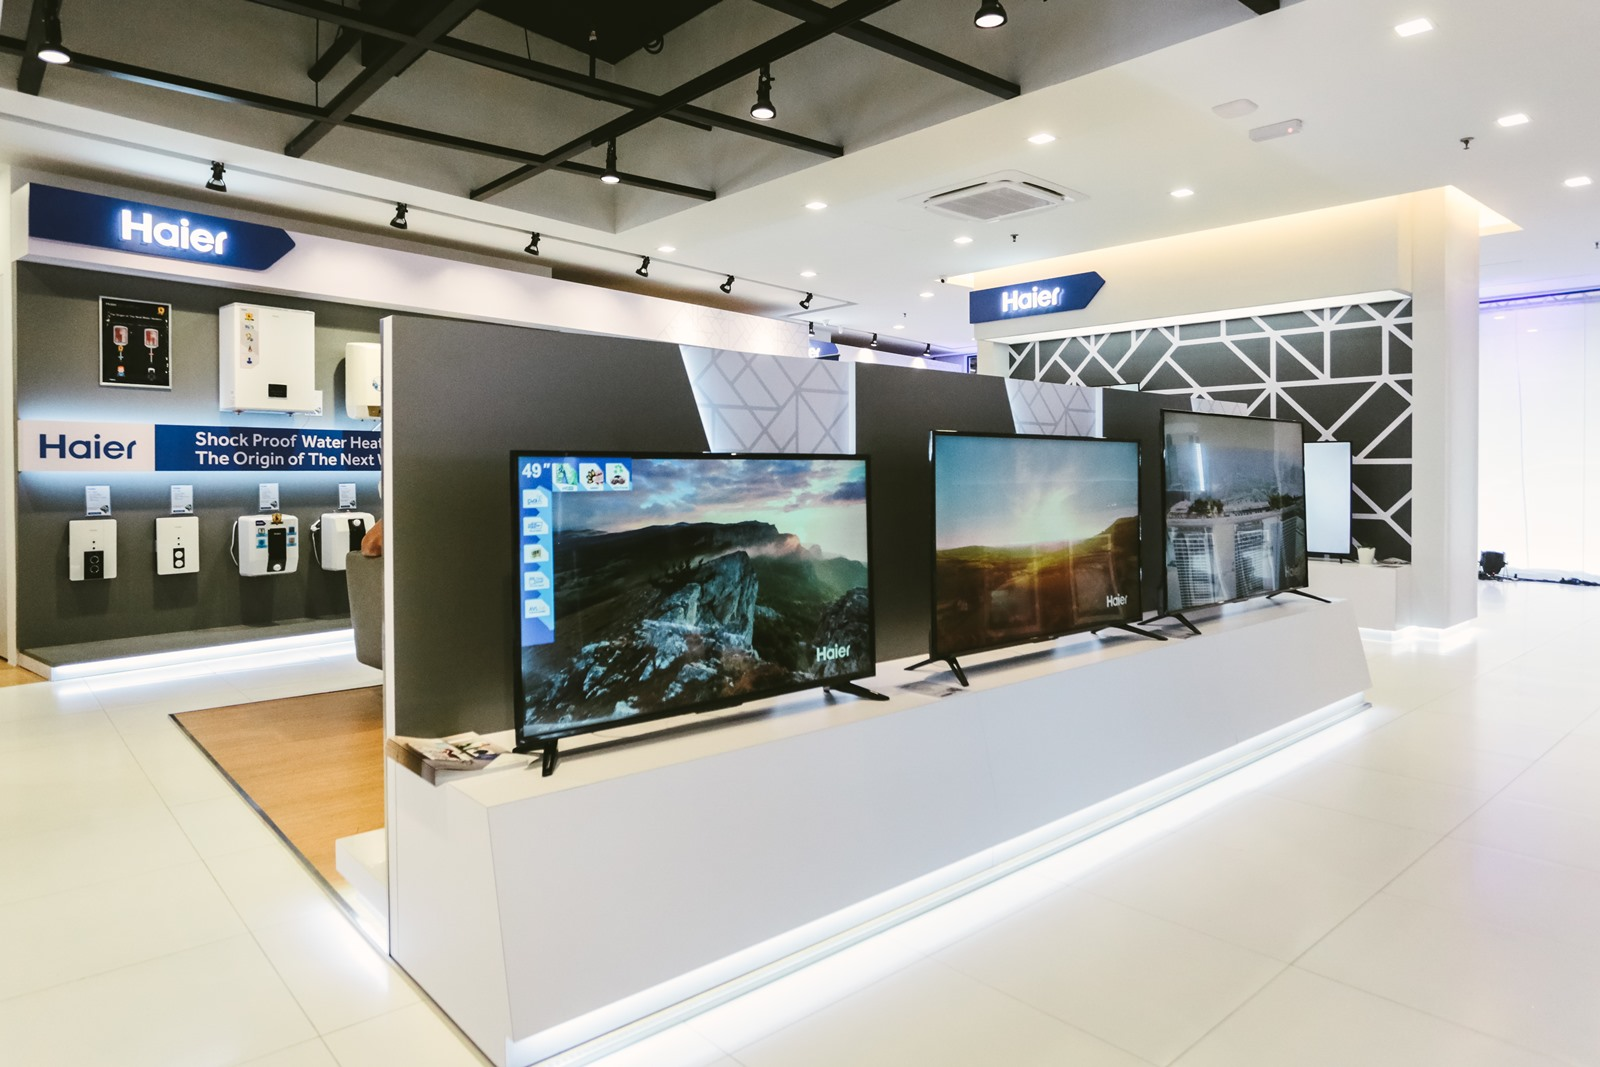 Smart TV, HD TV, and the latest in television only at the Haier Experience Centre